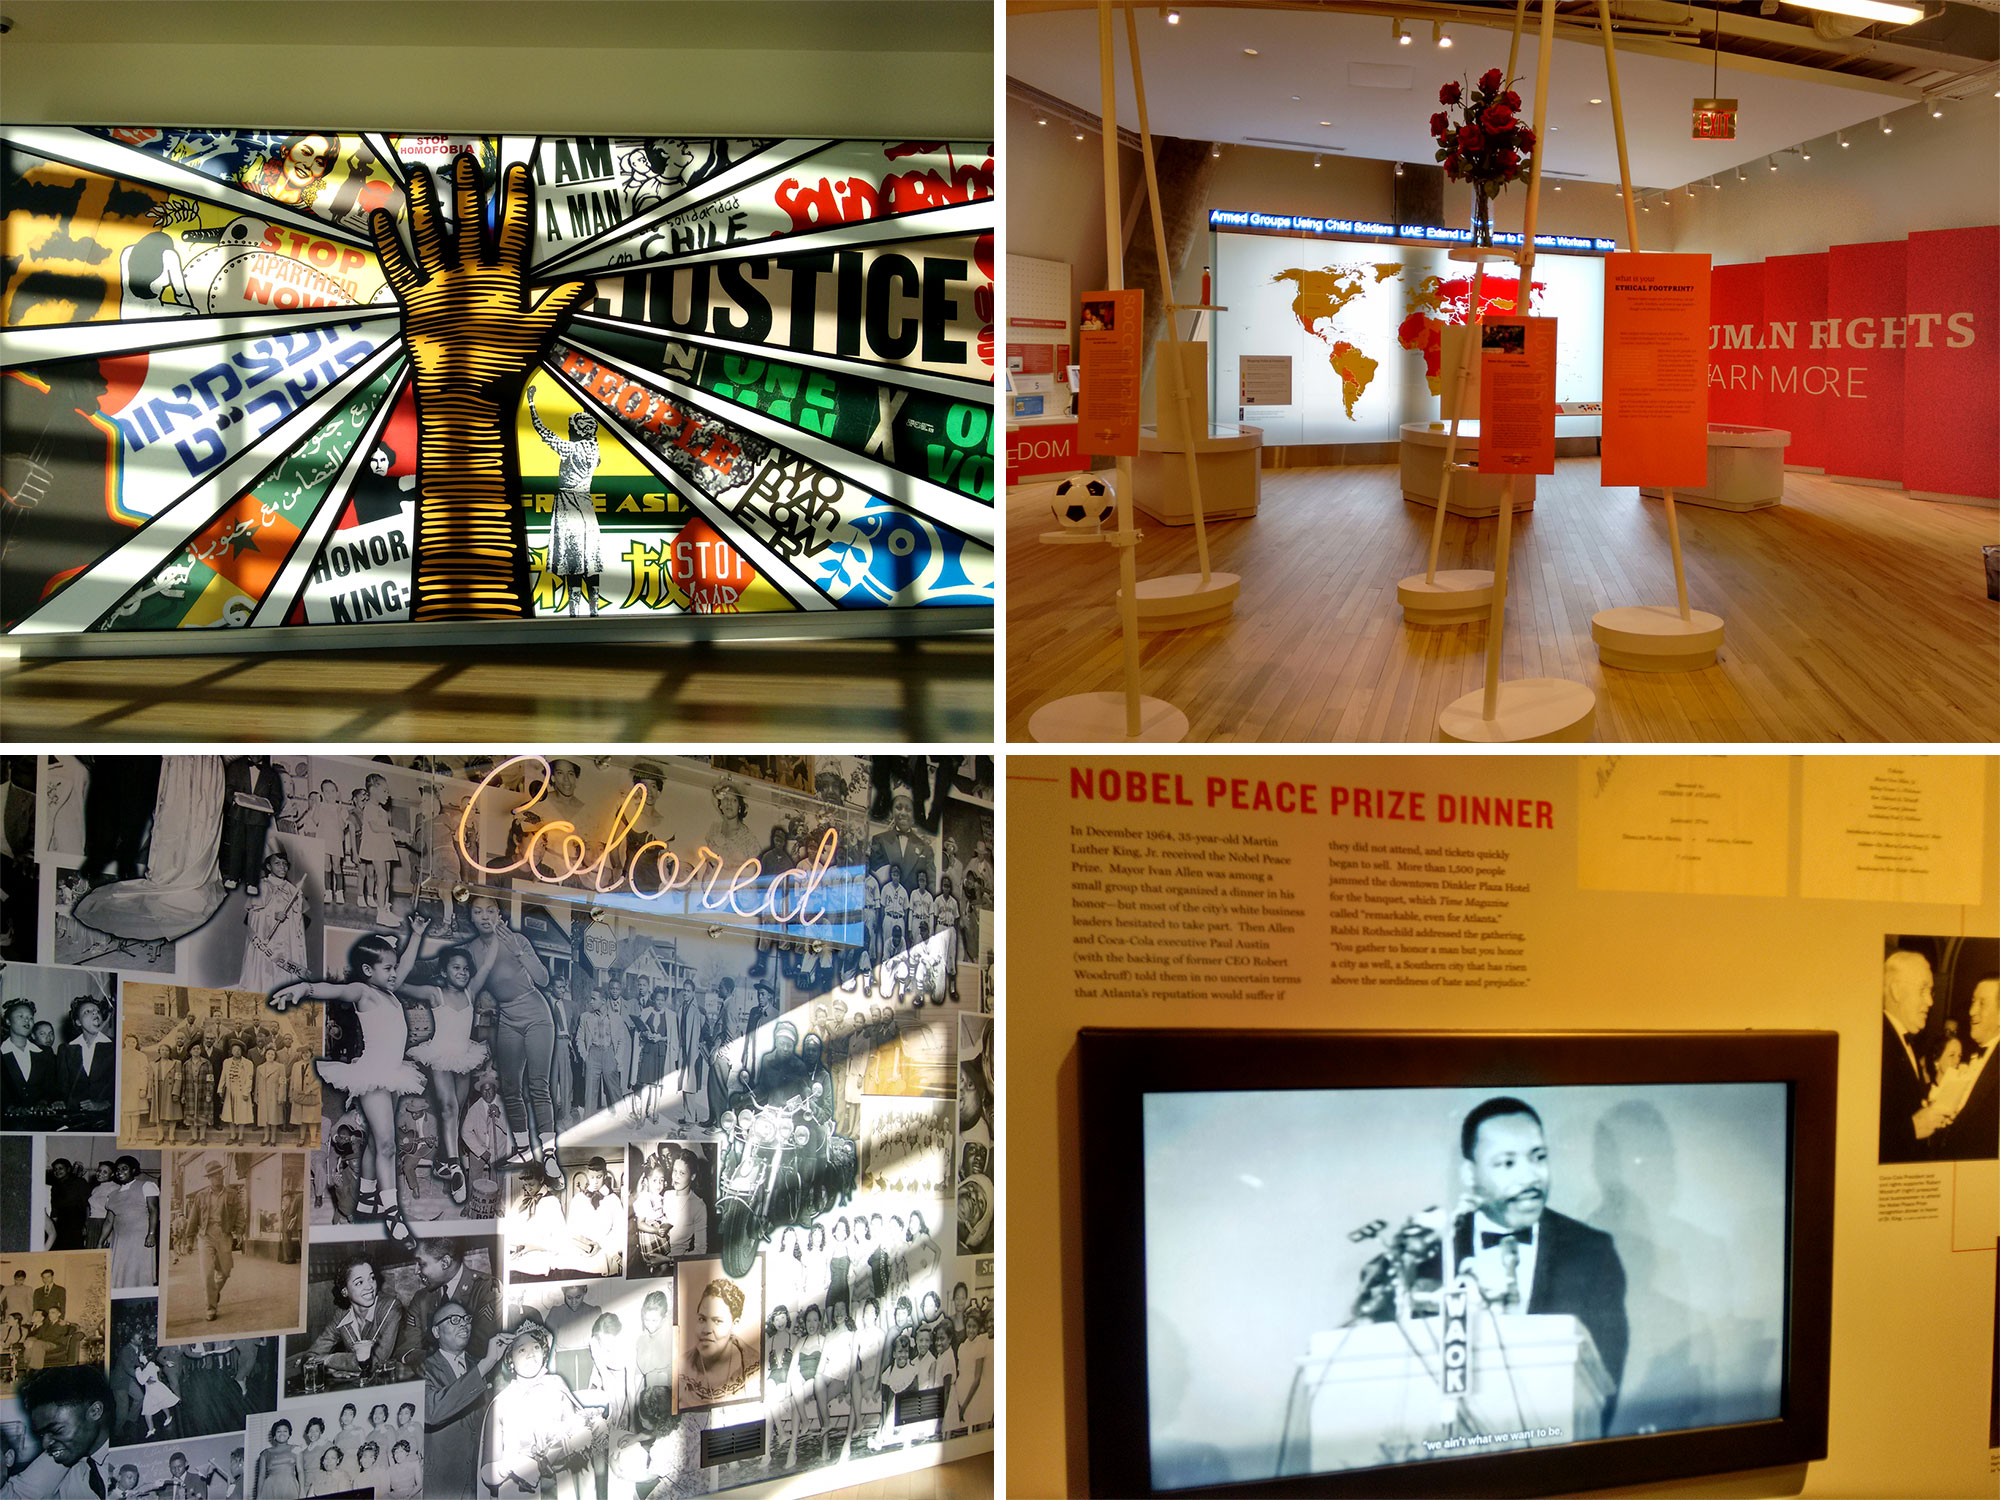 Center for Civil and Human Rights (Museu de Direitos Humanos e Civis), em Atlanta - Foto: Clovis Casemiro